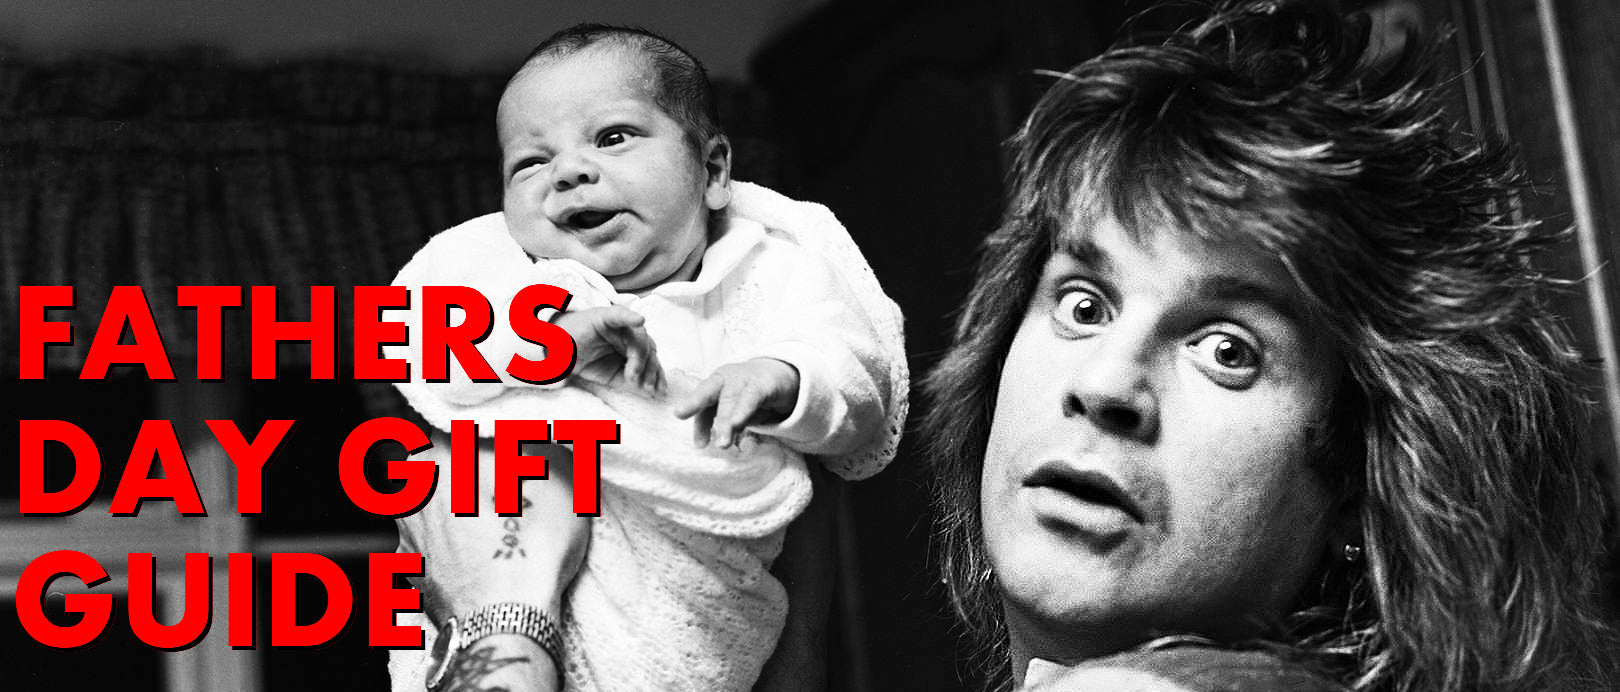 Father's Day Gift Guide | The Arts Music Store